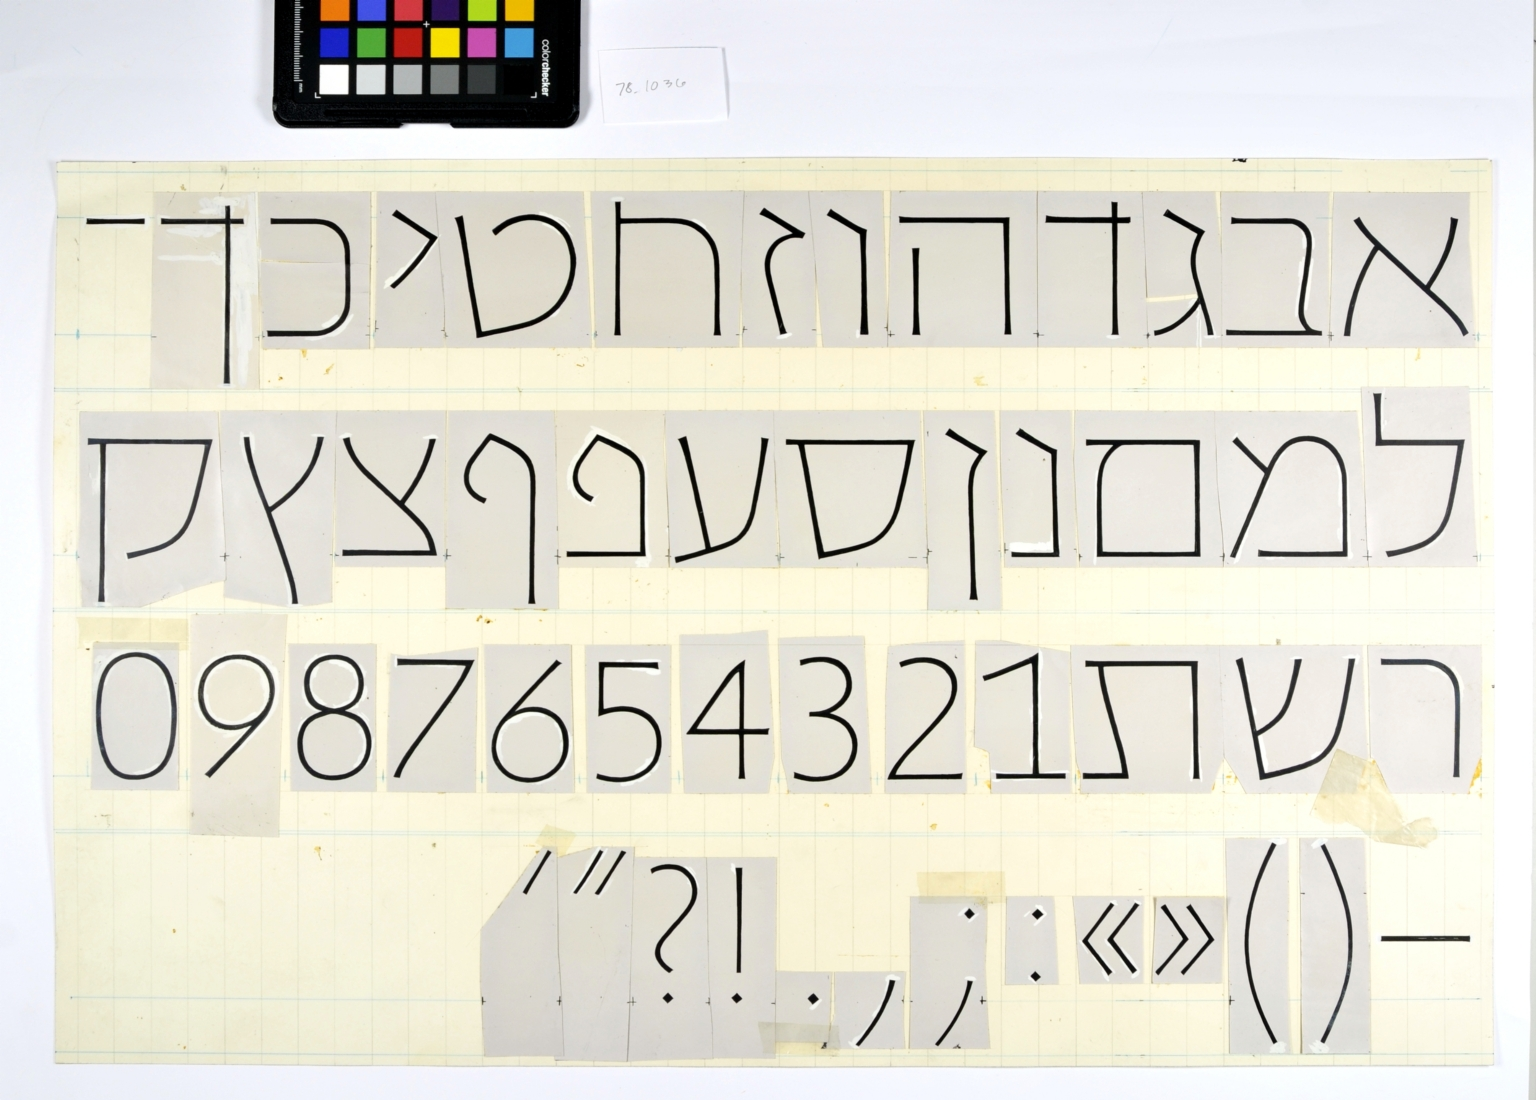 Mechanical for David Hebrew typeface family: even-stroke style, light weight